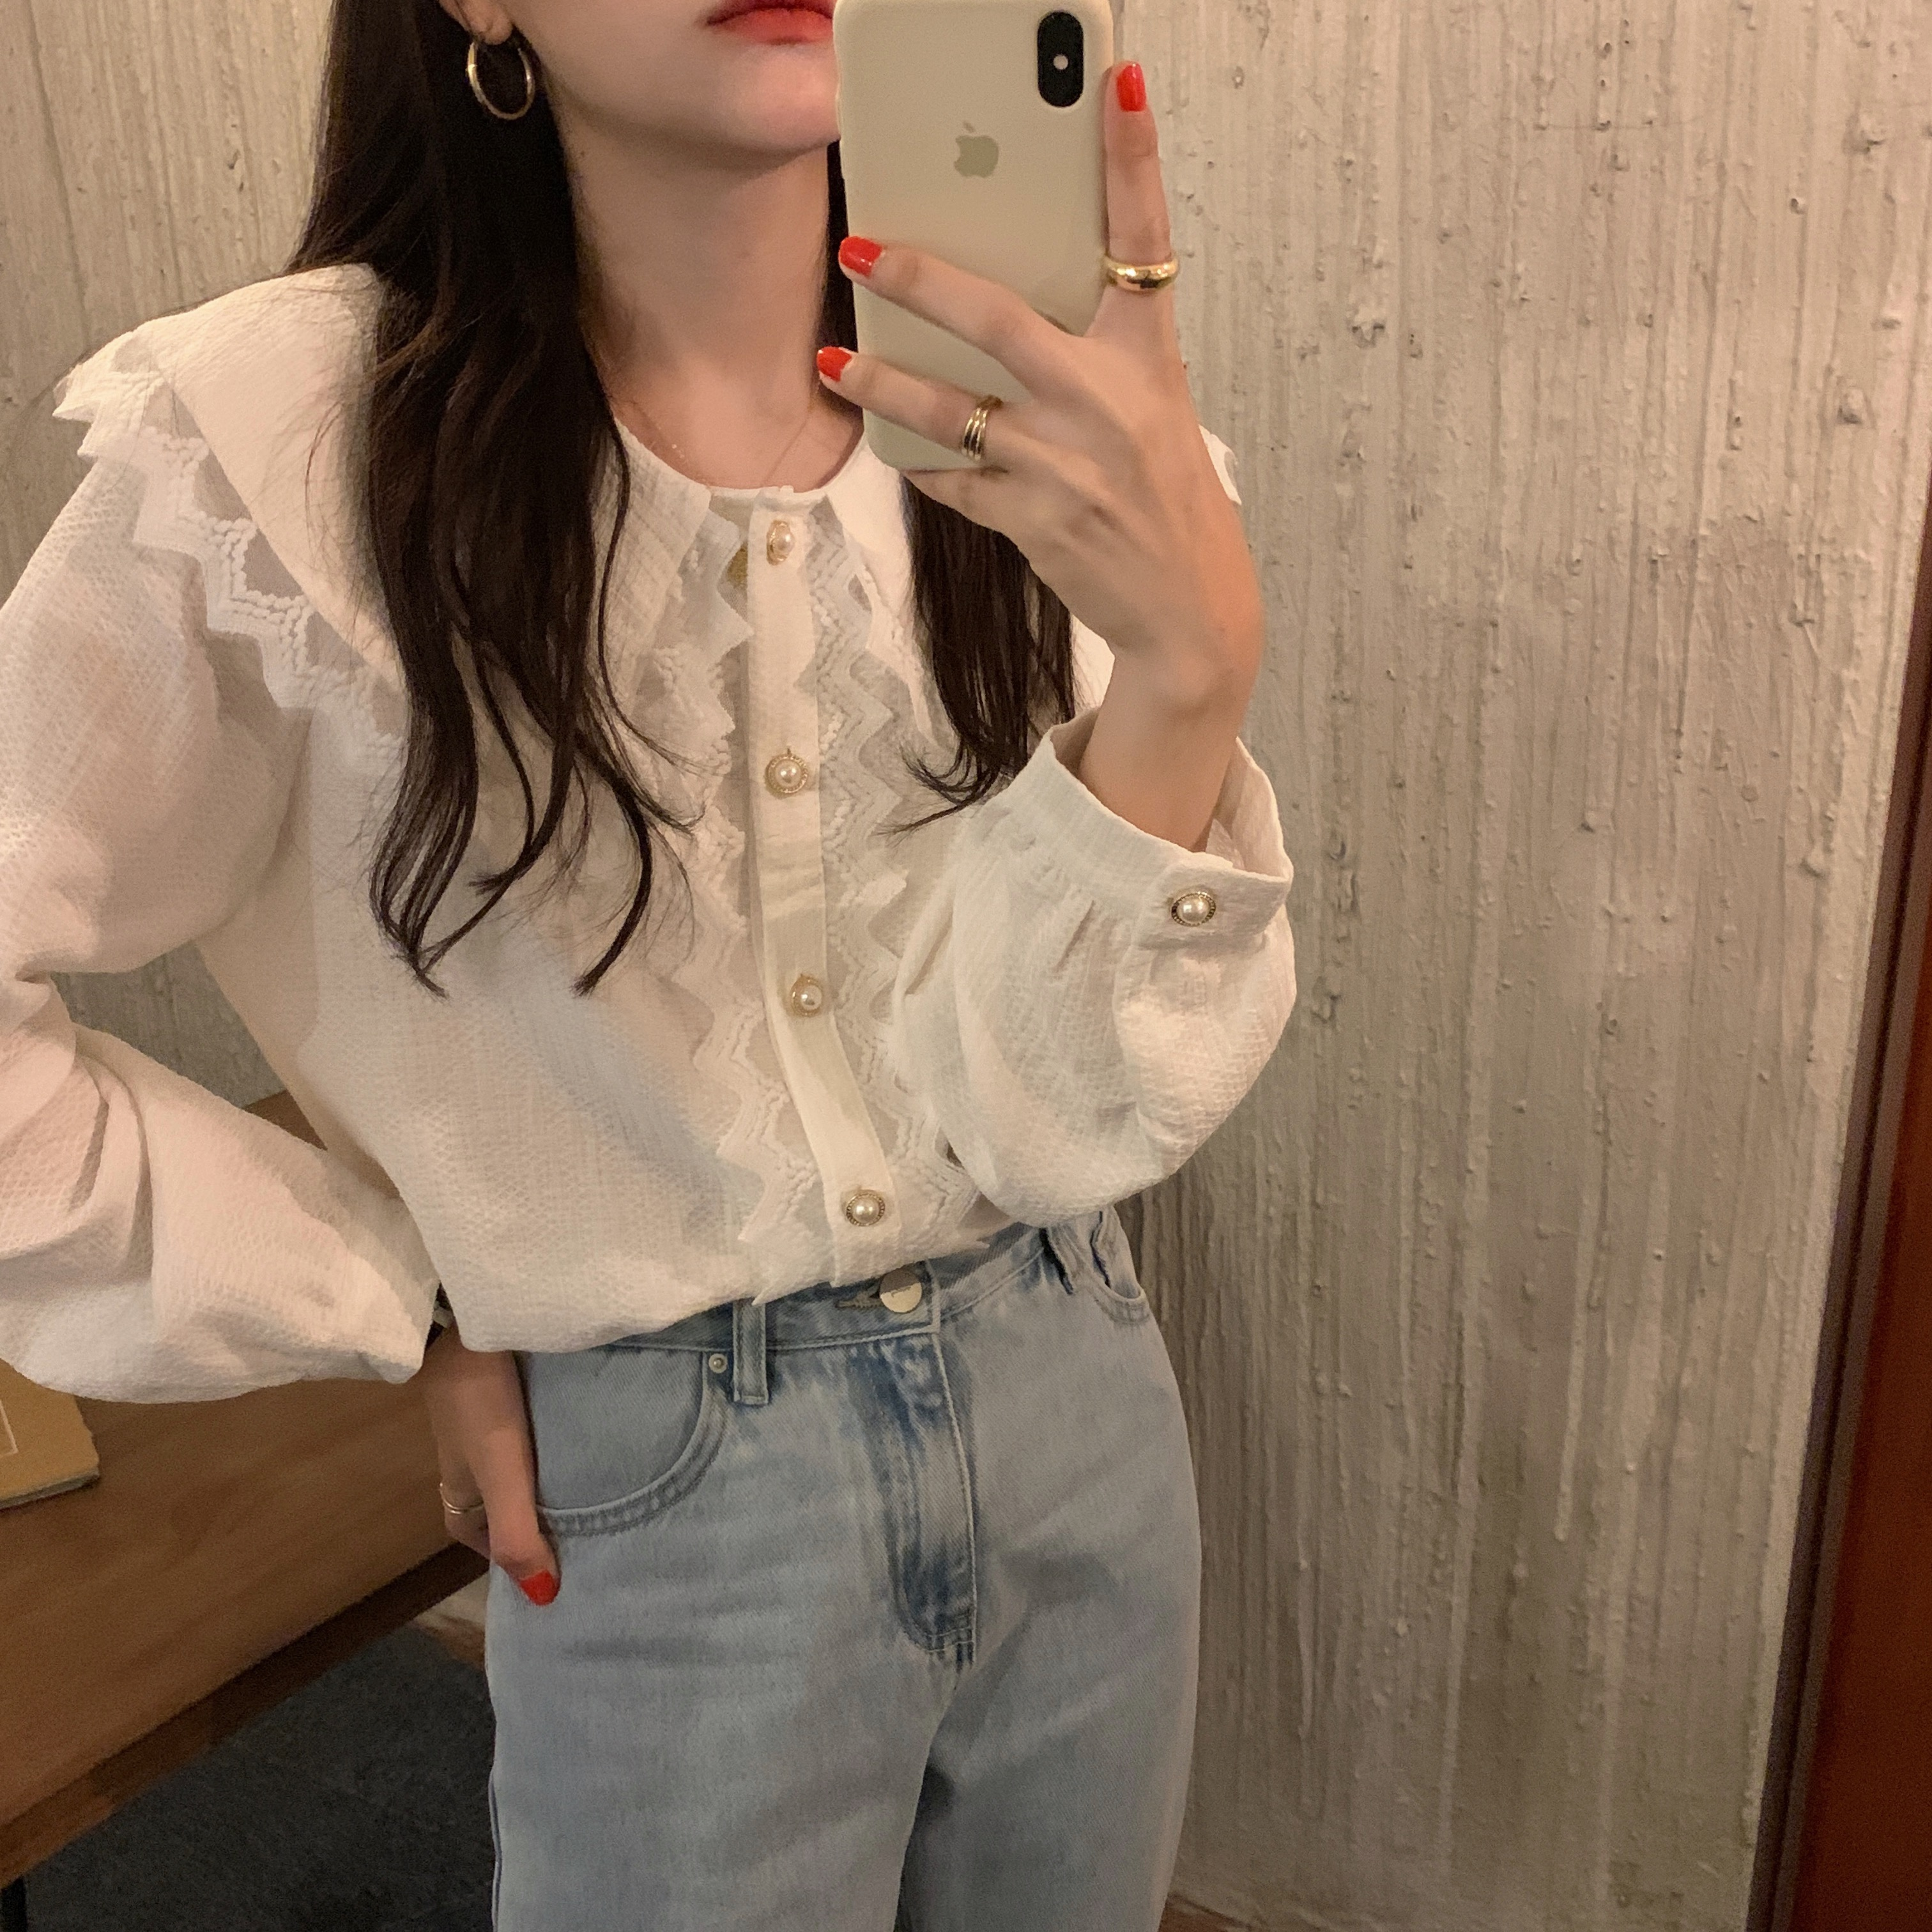 H3a90ab0a52704e3ea8c032af27432d6f6 - Spring / Autumn Big Lapel Collar Long Sleeves Lace Buttons Solid Blouse